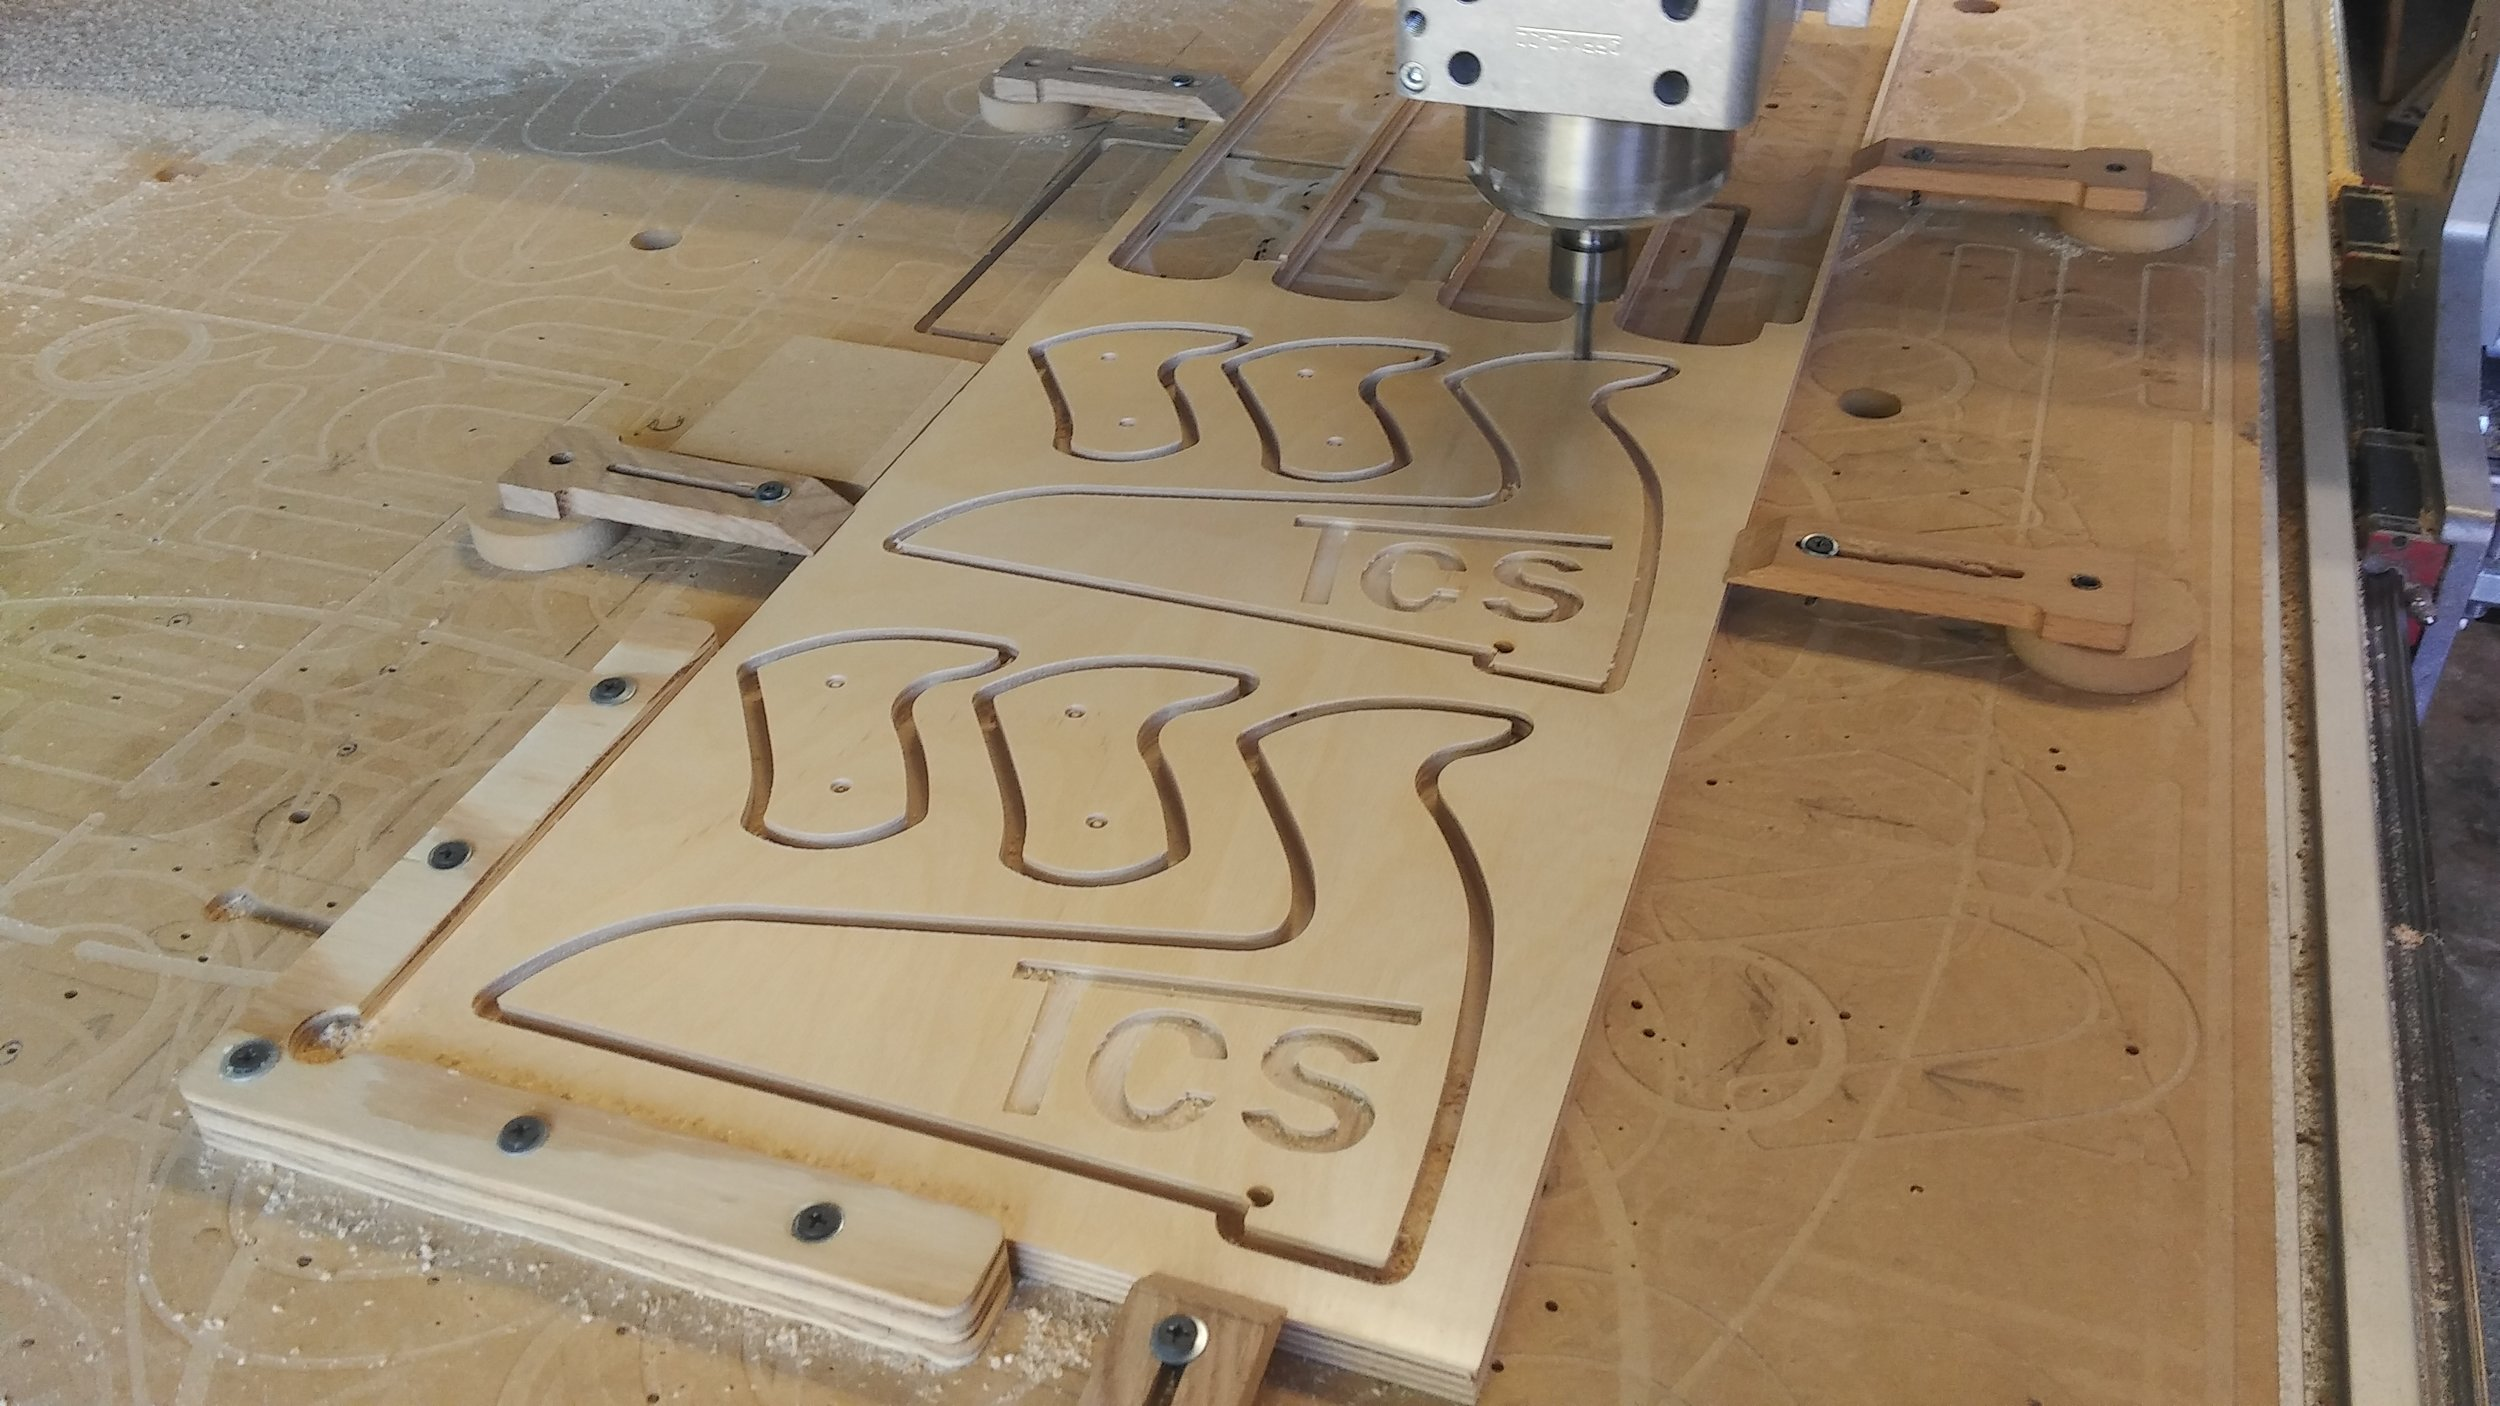 Dalton CNC Portfolio. Company logo cutout by laser engraving CNC Routing Machine.